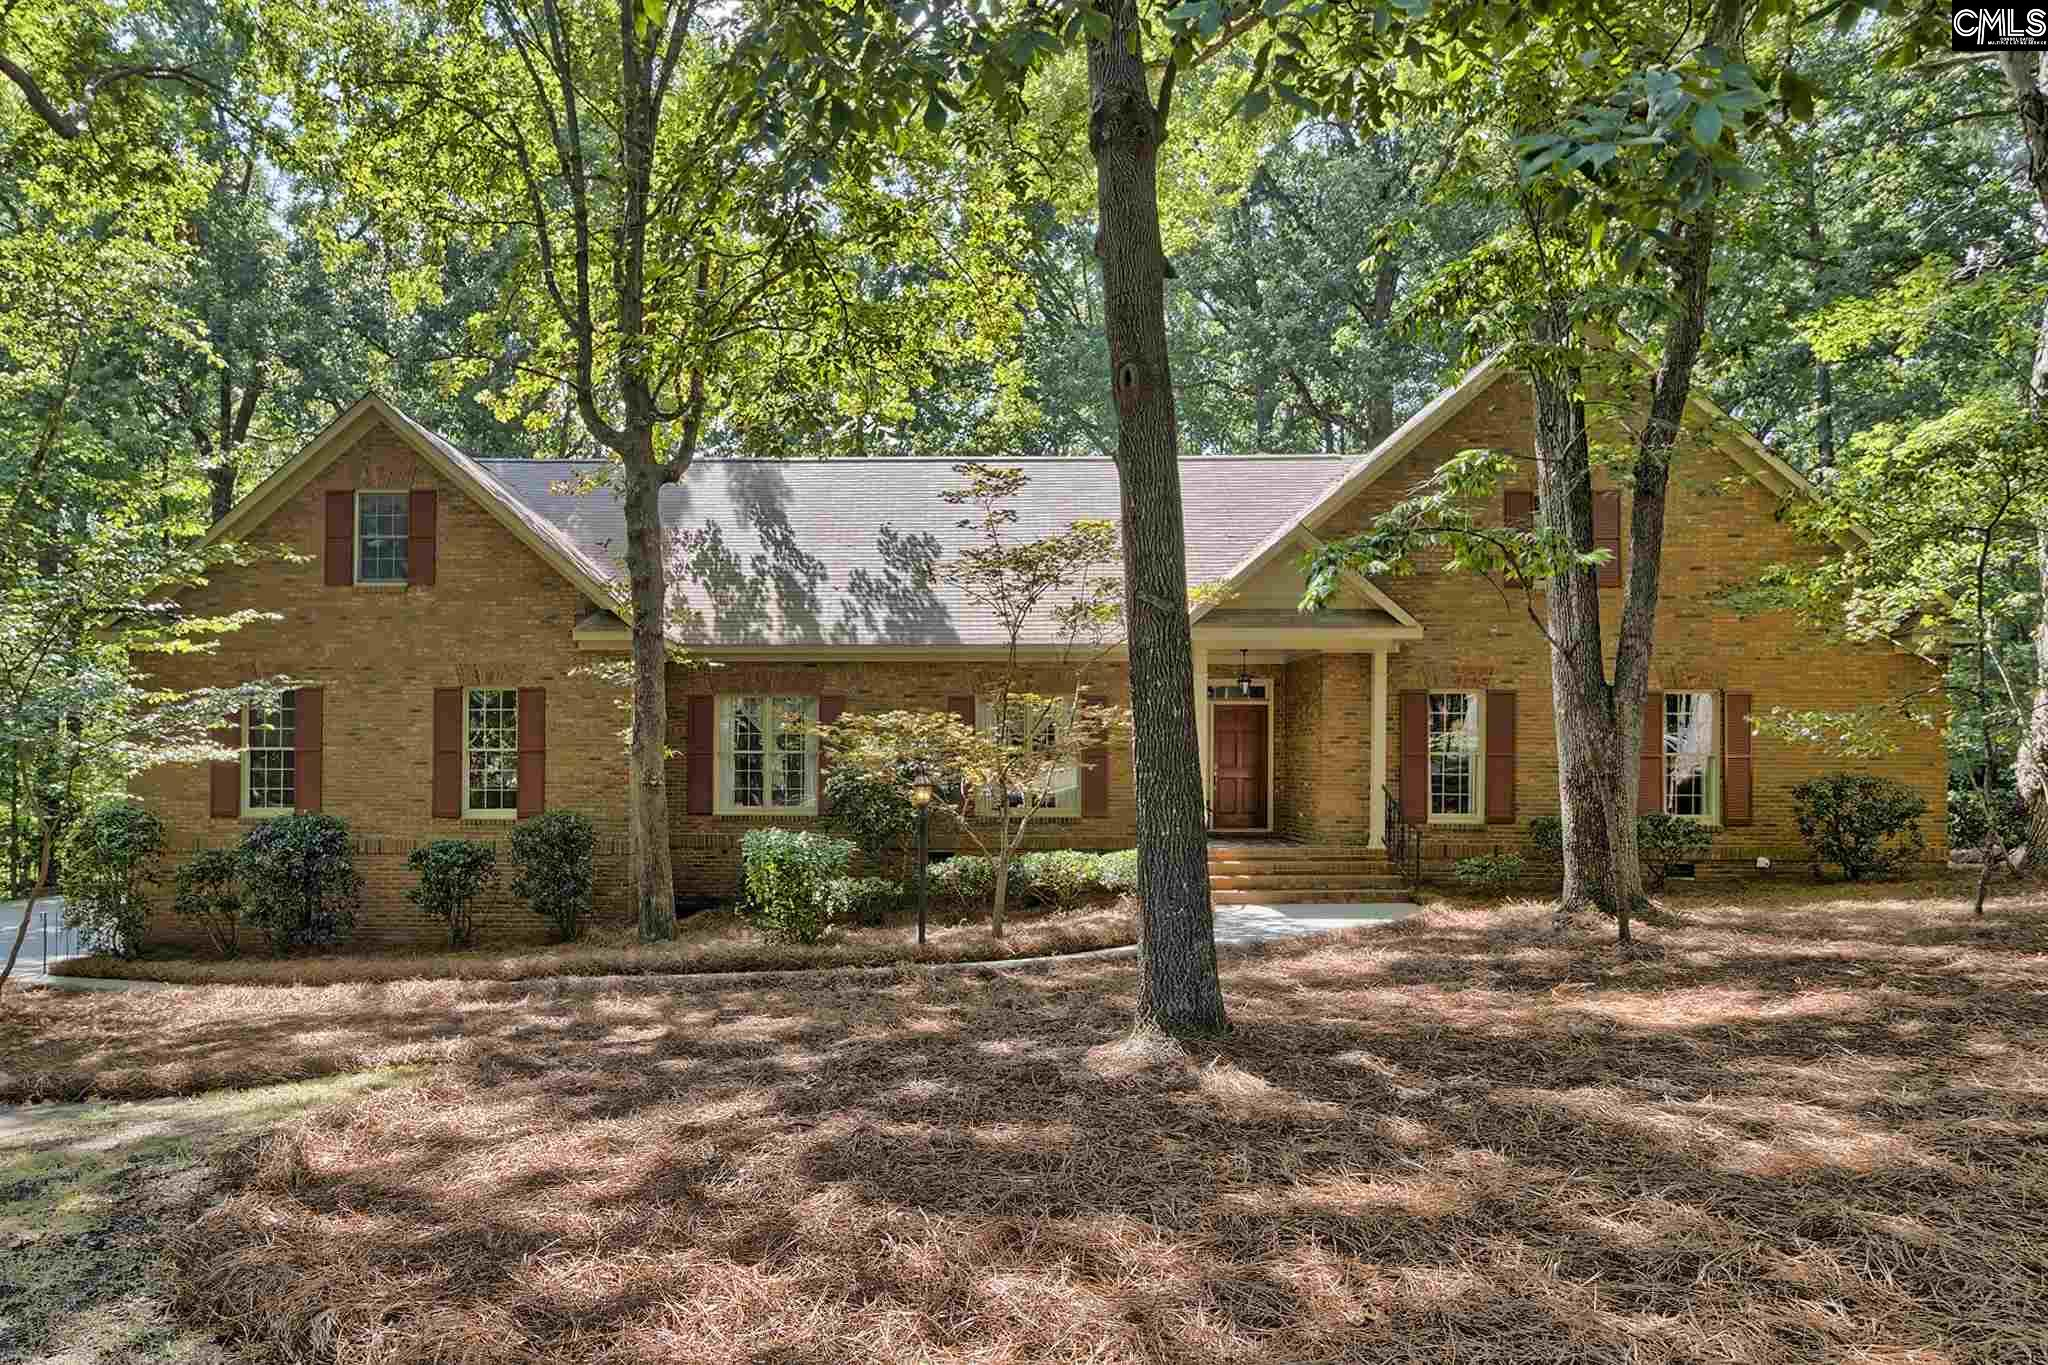 162 Carriage Hill Plantation Lexington, SC 29072